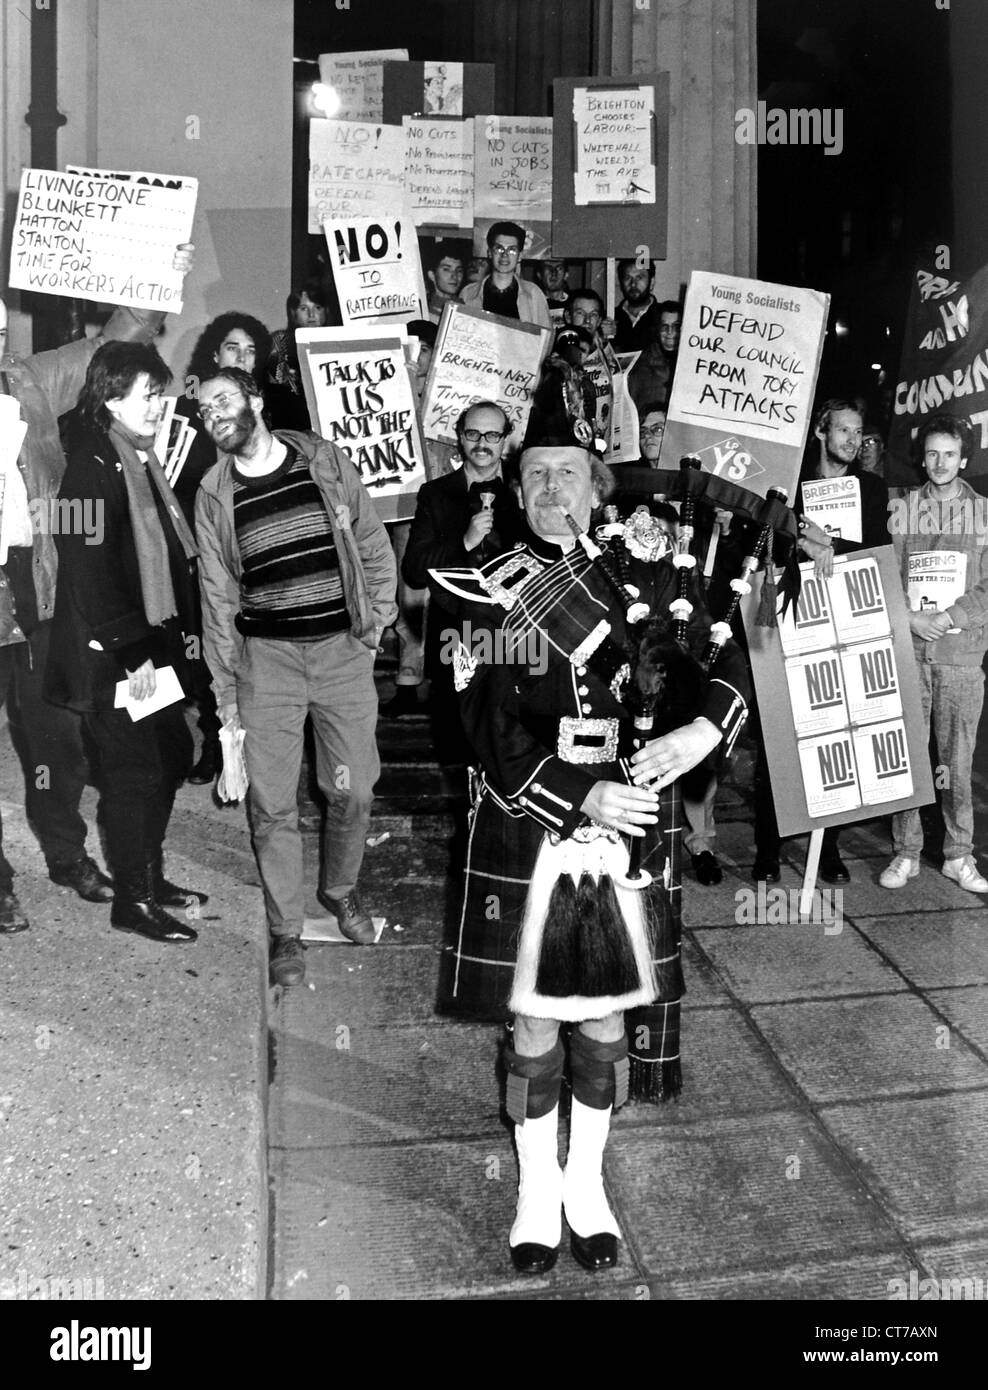 Protest outside Brighton Town Hall against proposed Government cuts in local council spending in 1986 - Stock Image